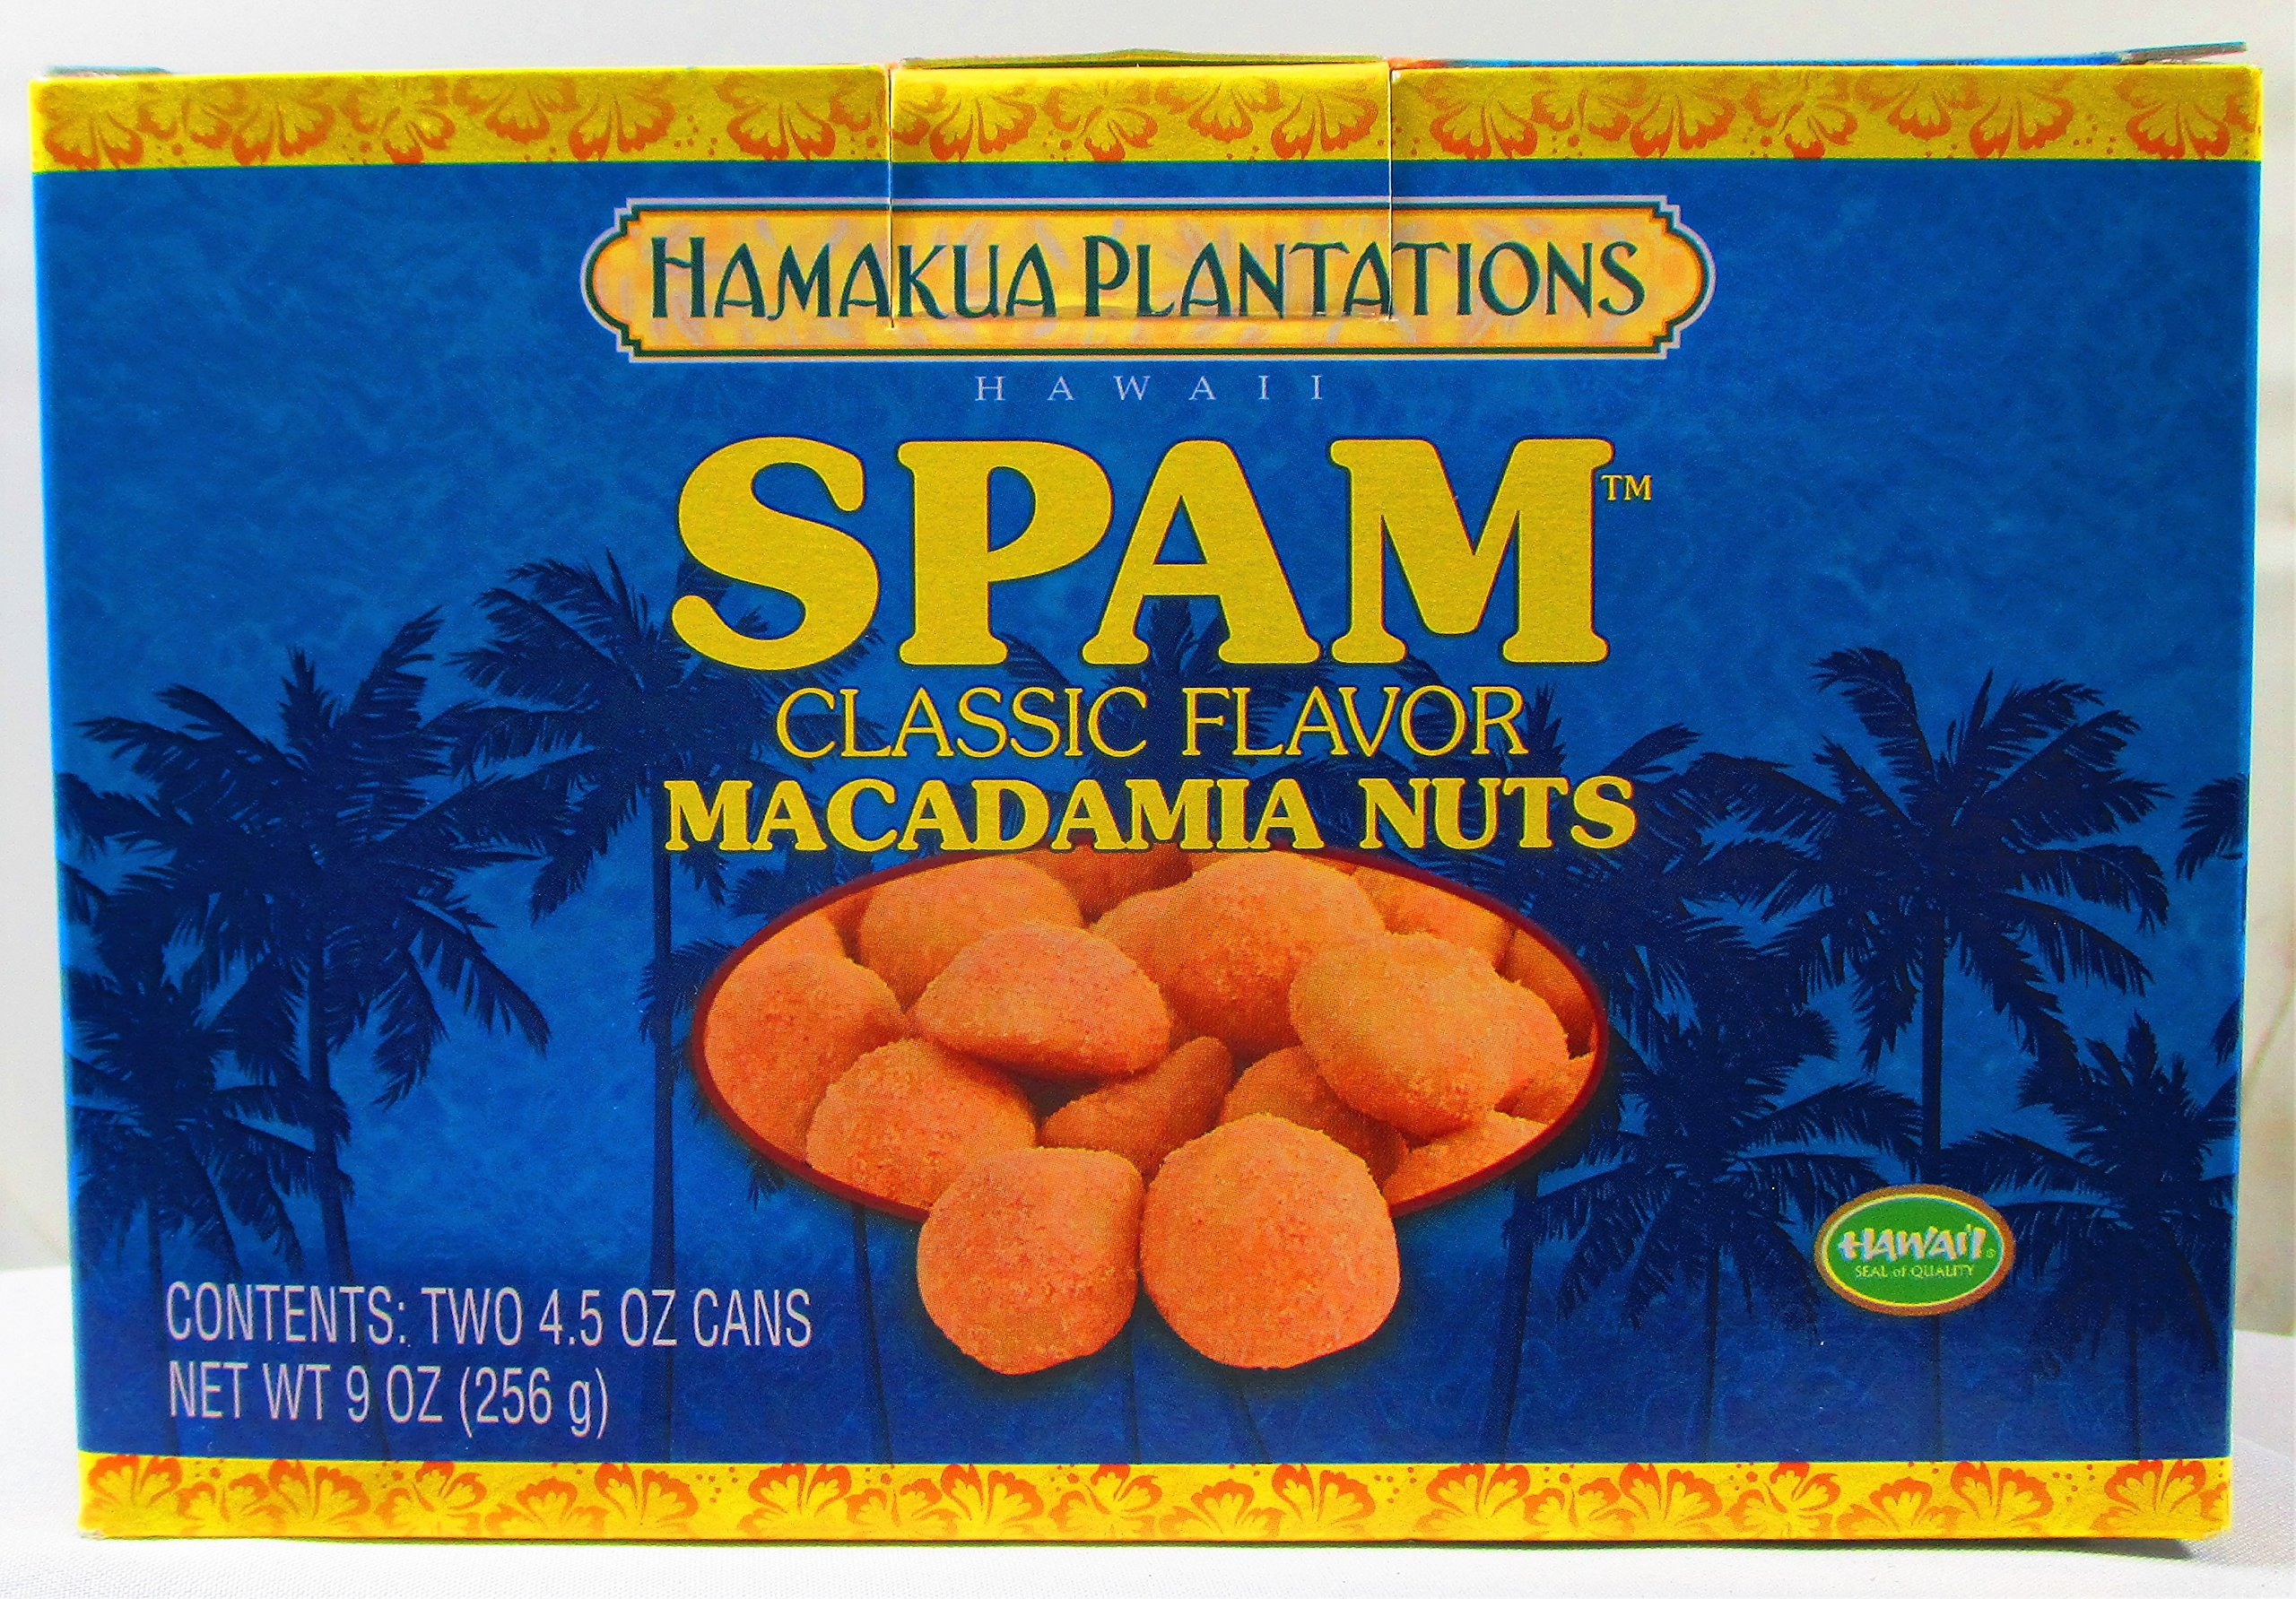 Hamakua Plantations Macadamia Nuts Spam Flavored (Two 4.5 oz. Cans